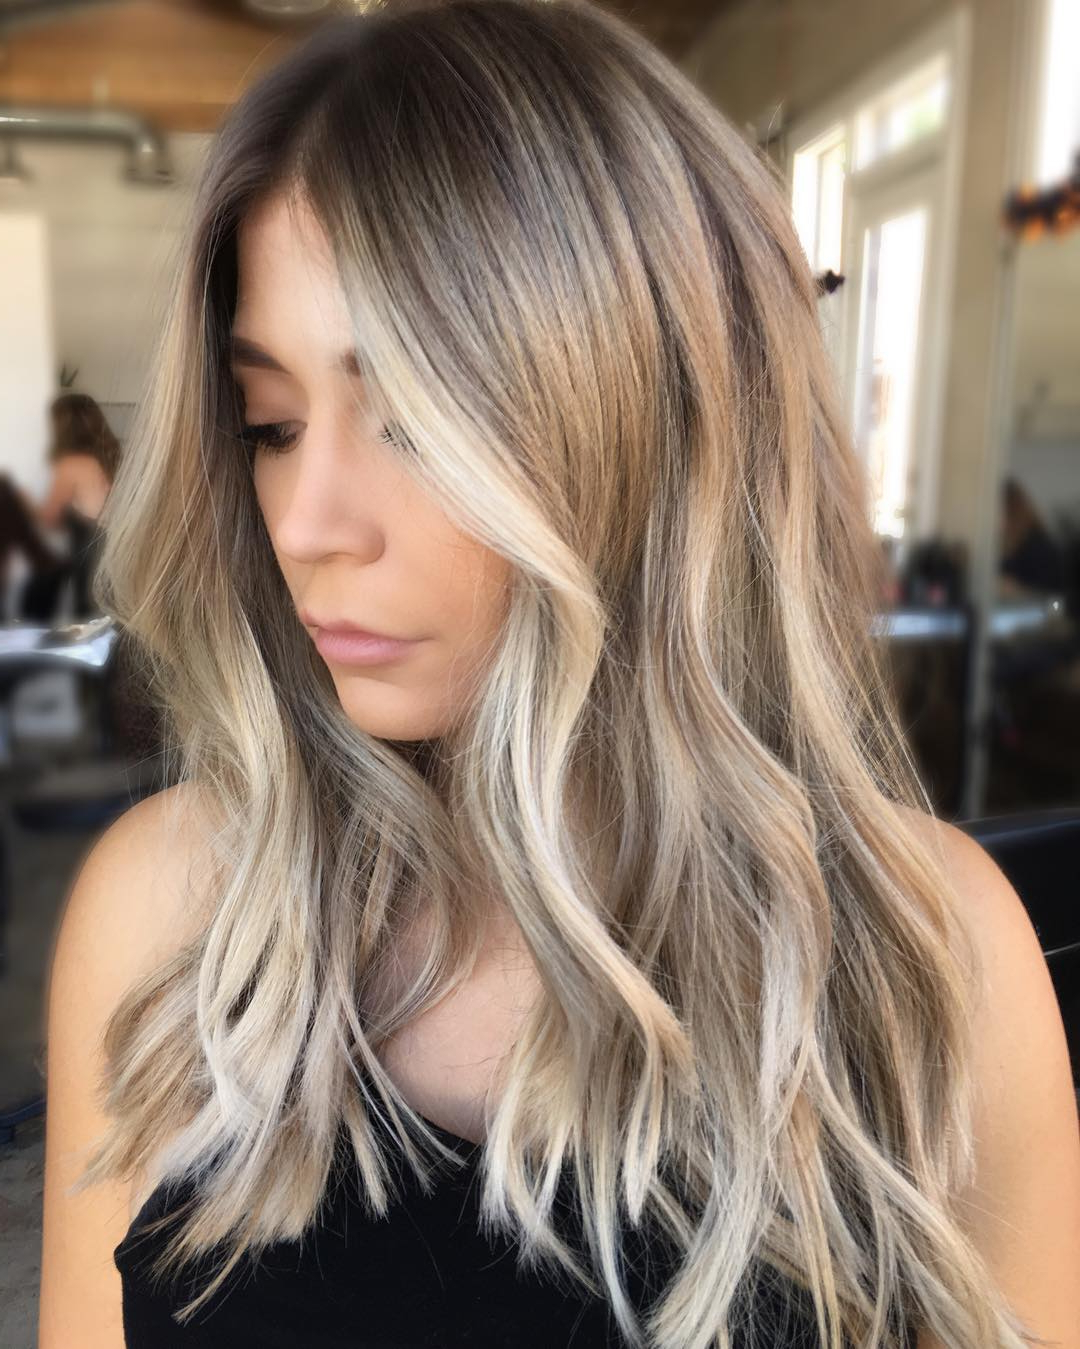 10 Ash Blonde Hairstyles For All Skin Tones 2020 With Most Recent Longer Tousled Caramel Blonde Shag Haircuts (View 18 of 20)